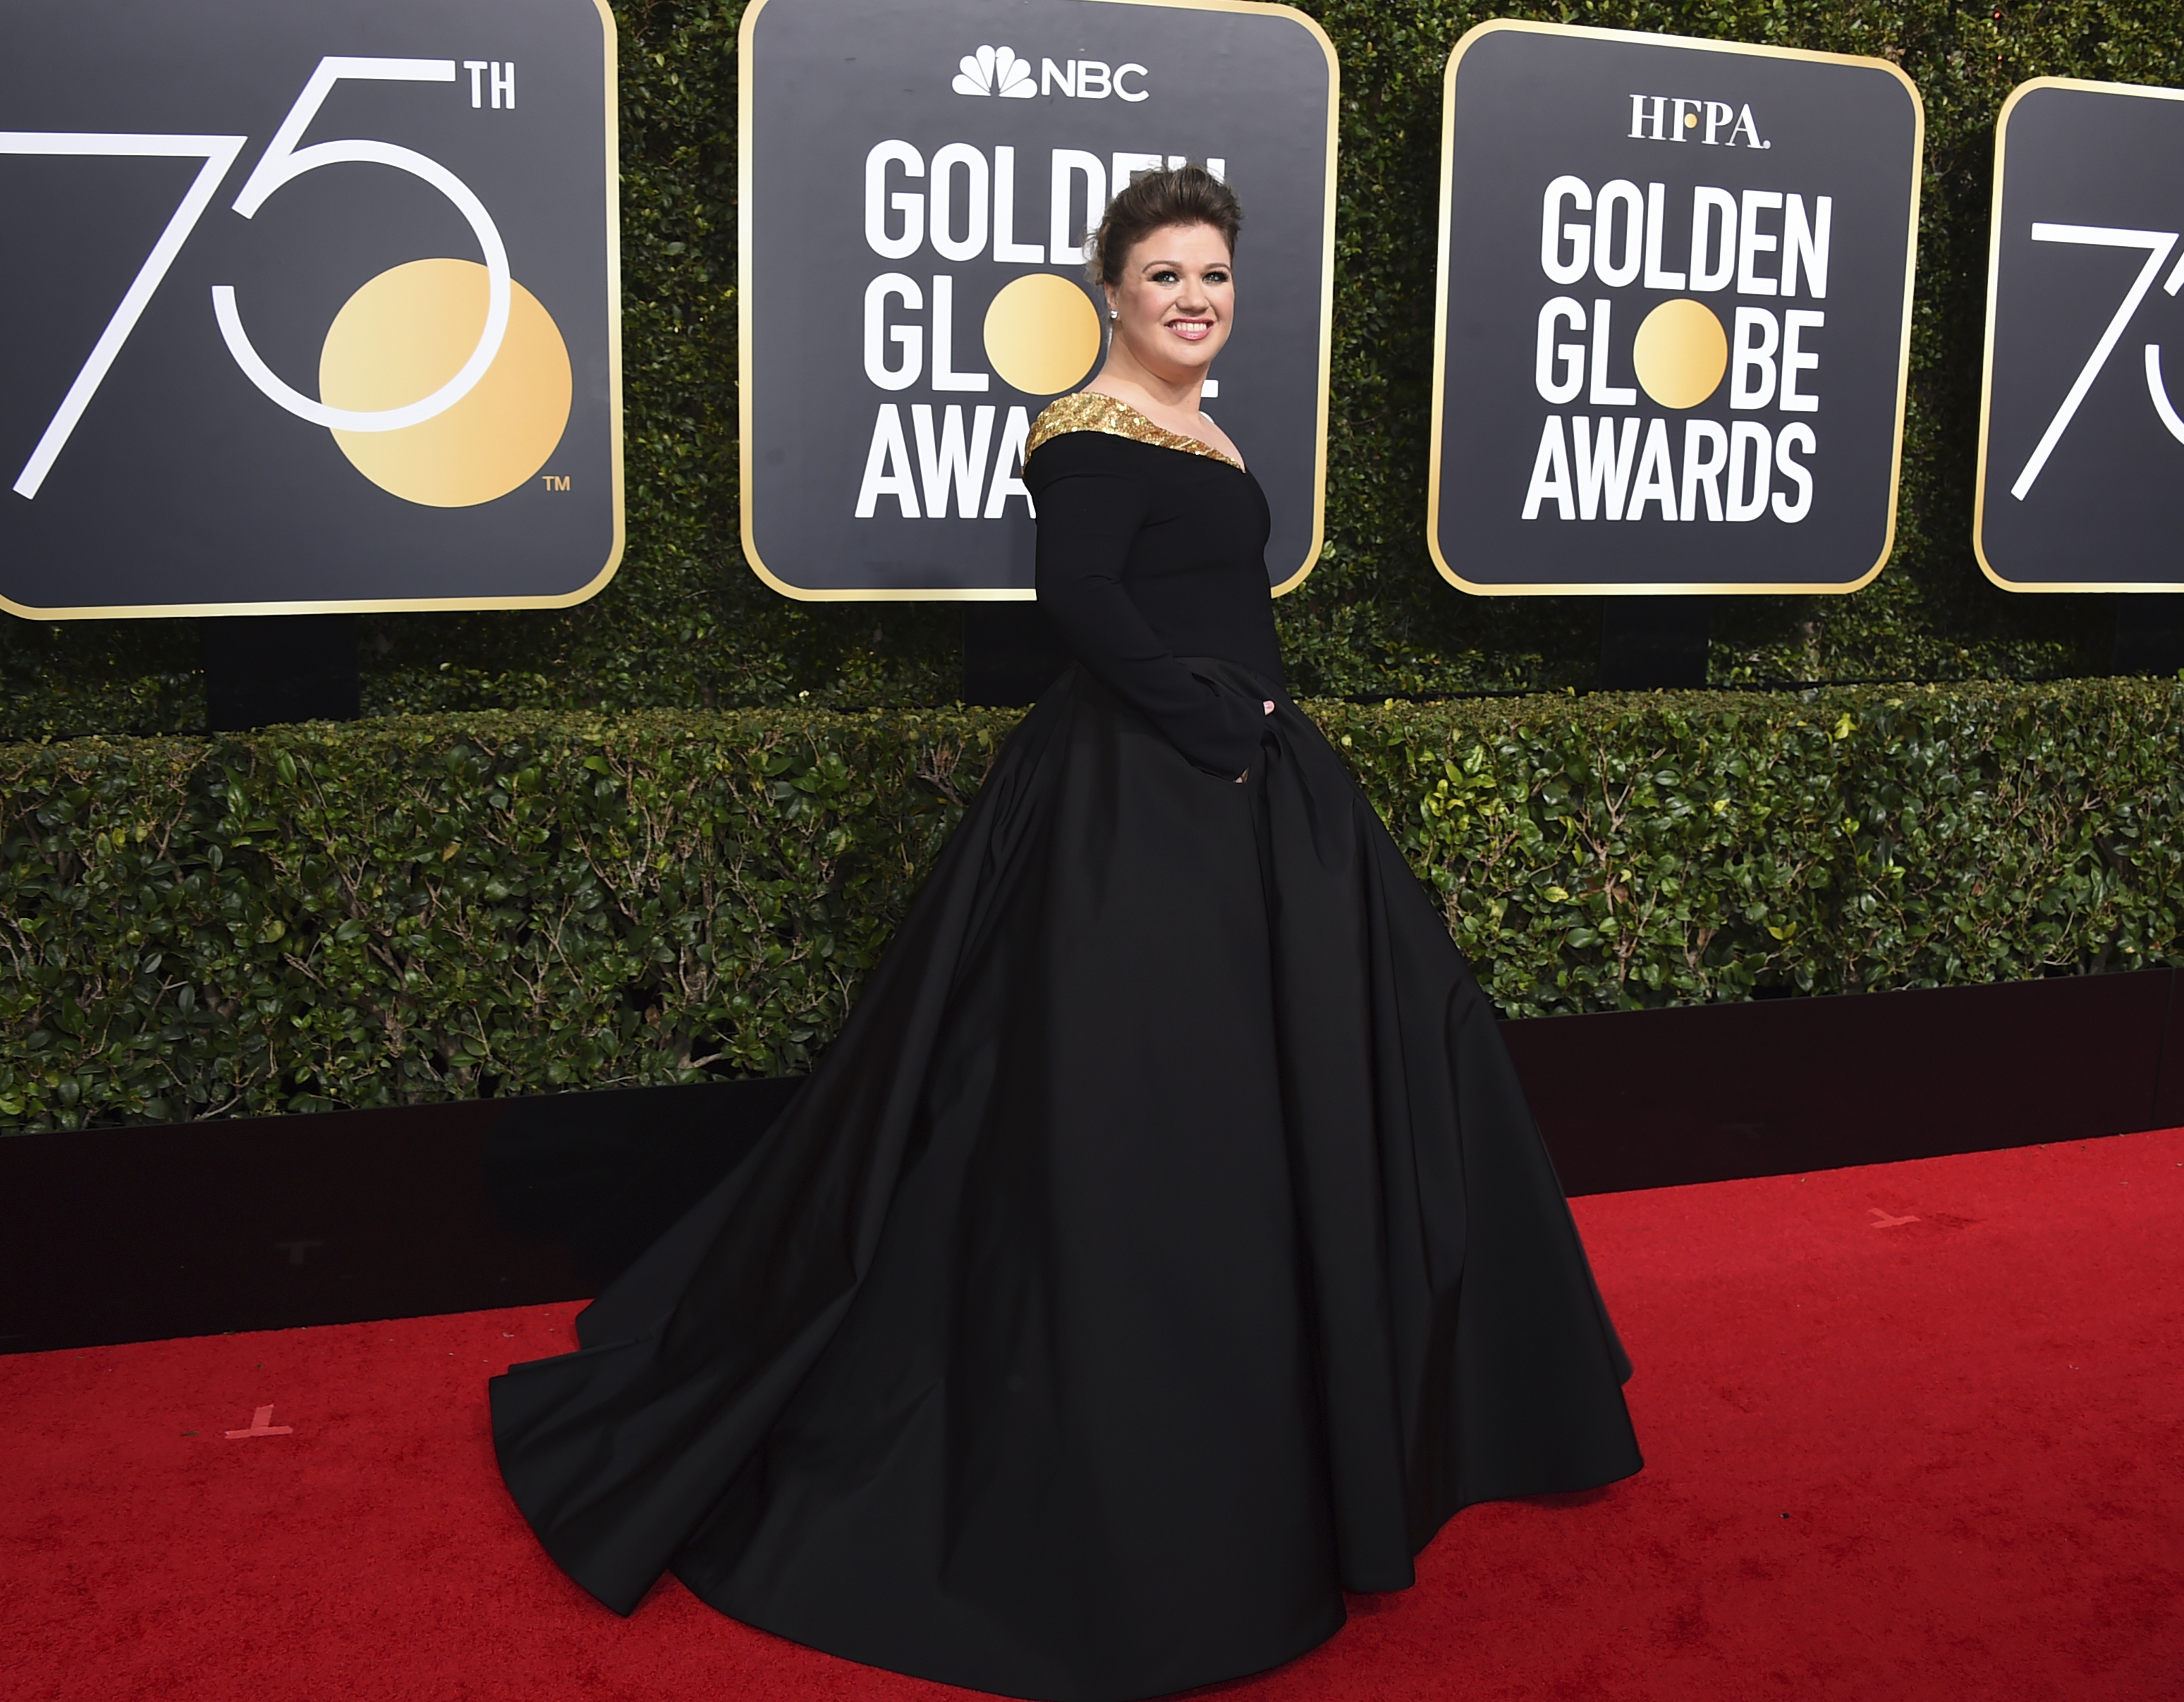 <div class='meta'><div class='origin-logo' data-origin='AP'></div><span class='caption-text' data-credit='Jordan Strauss/Invision/AP'>Kelly Clarkson arrives at the 75th annual Golden Globe Awards at the Beverly Hilton Hotel on Sunday, Jan. 7, 2018, in Beverly Hills, Calif.</span></div>